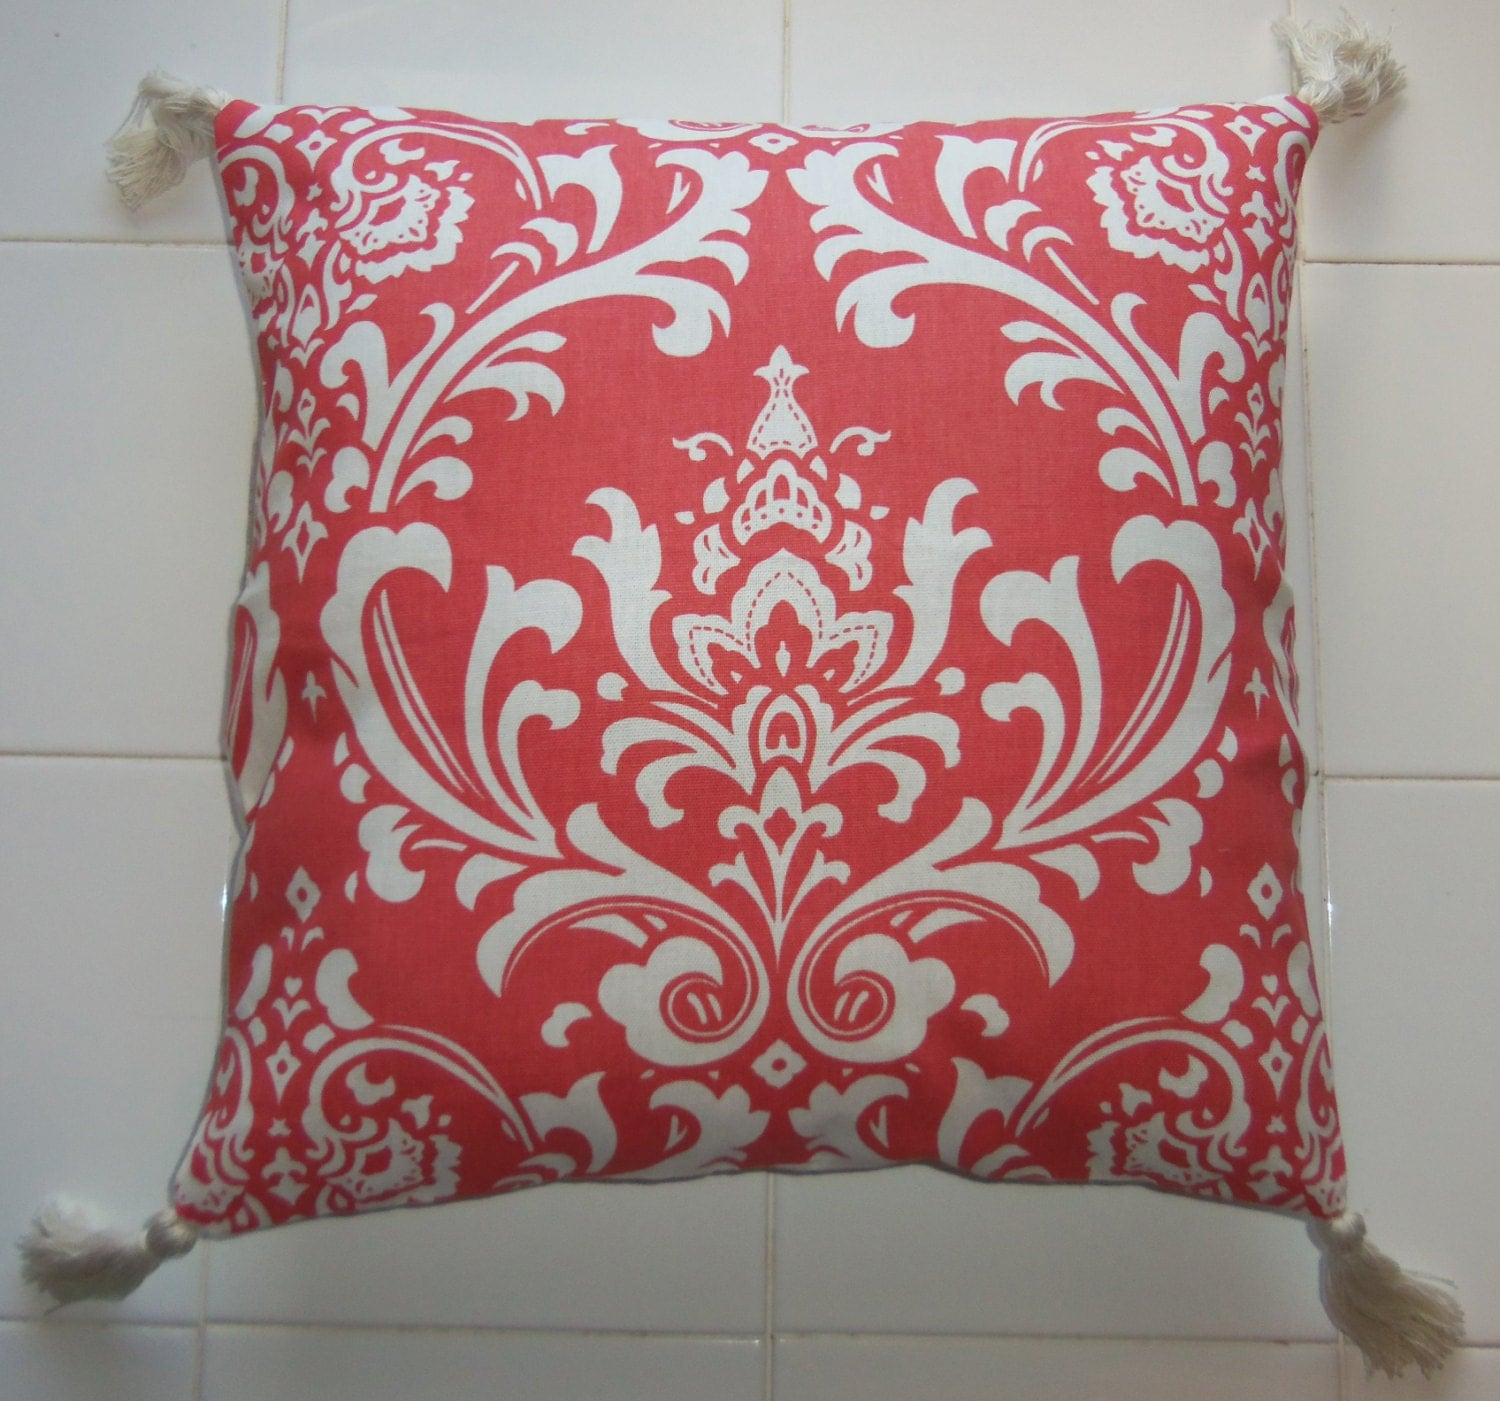 Throw Pillow Zipper Covers : 16 x 16 Throw Pillow Cover Reversible Zippered by CreamyNougat